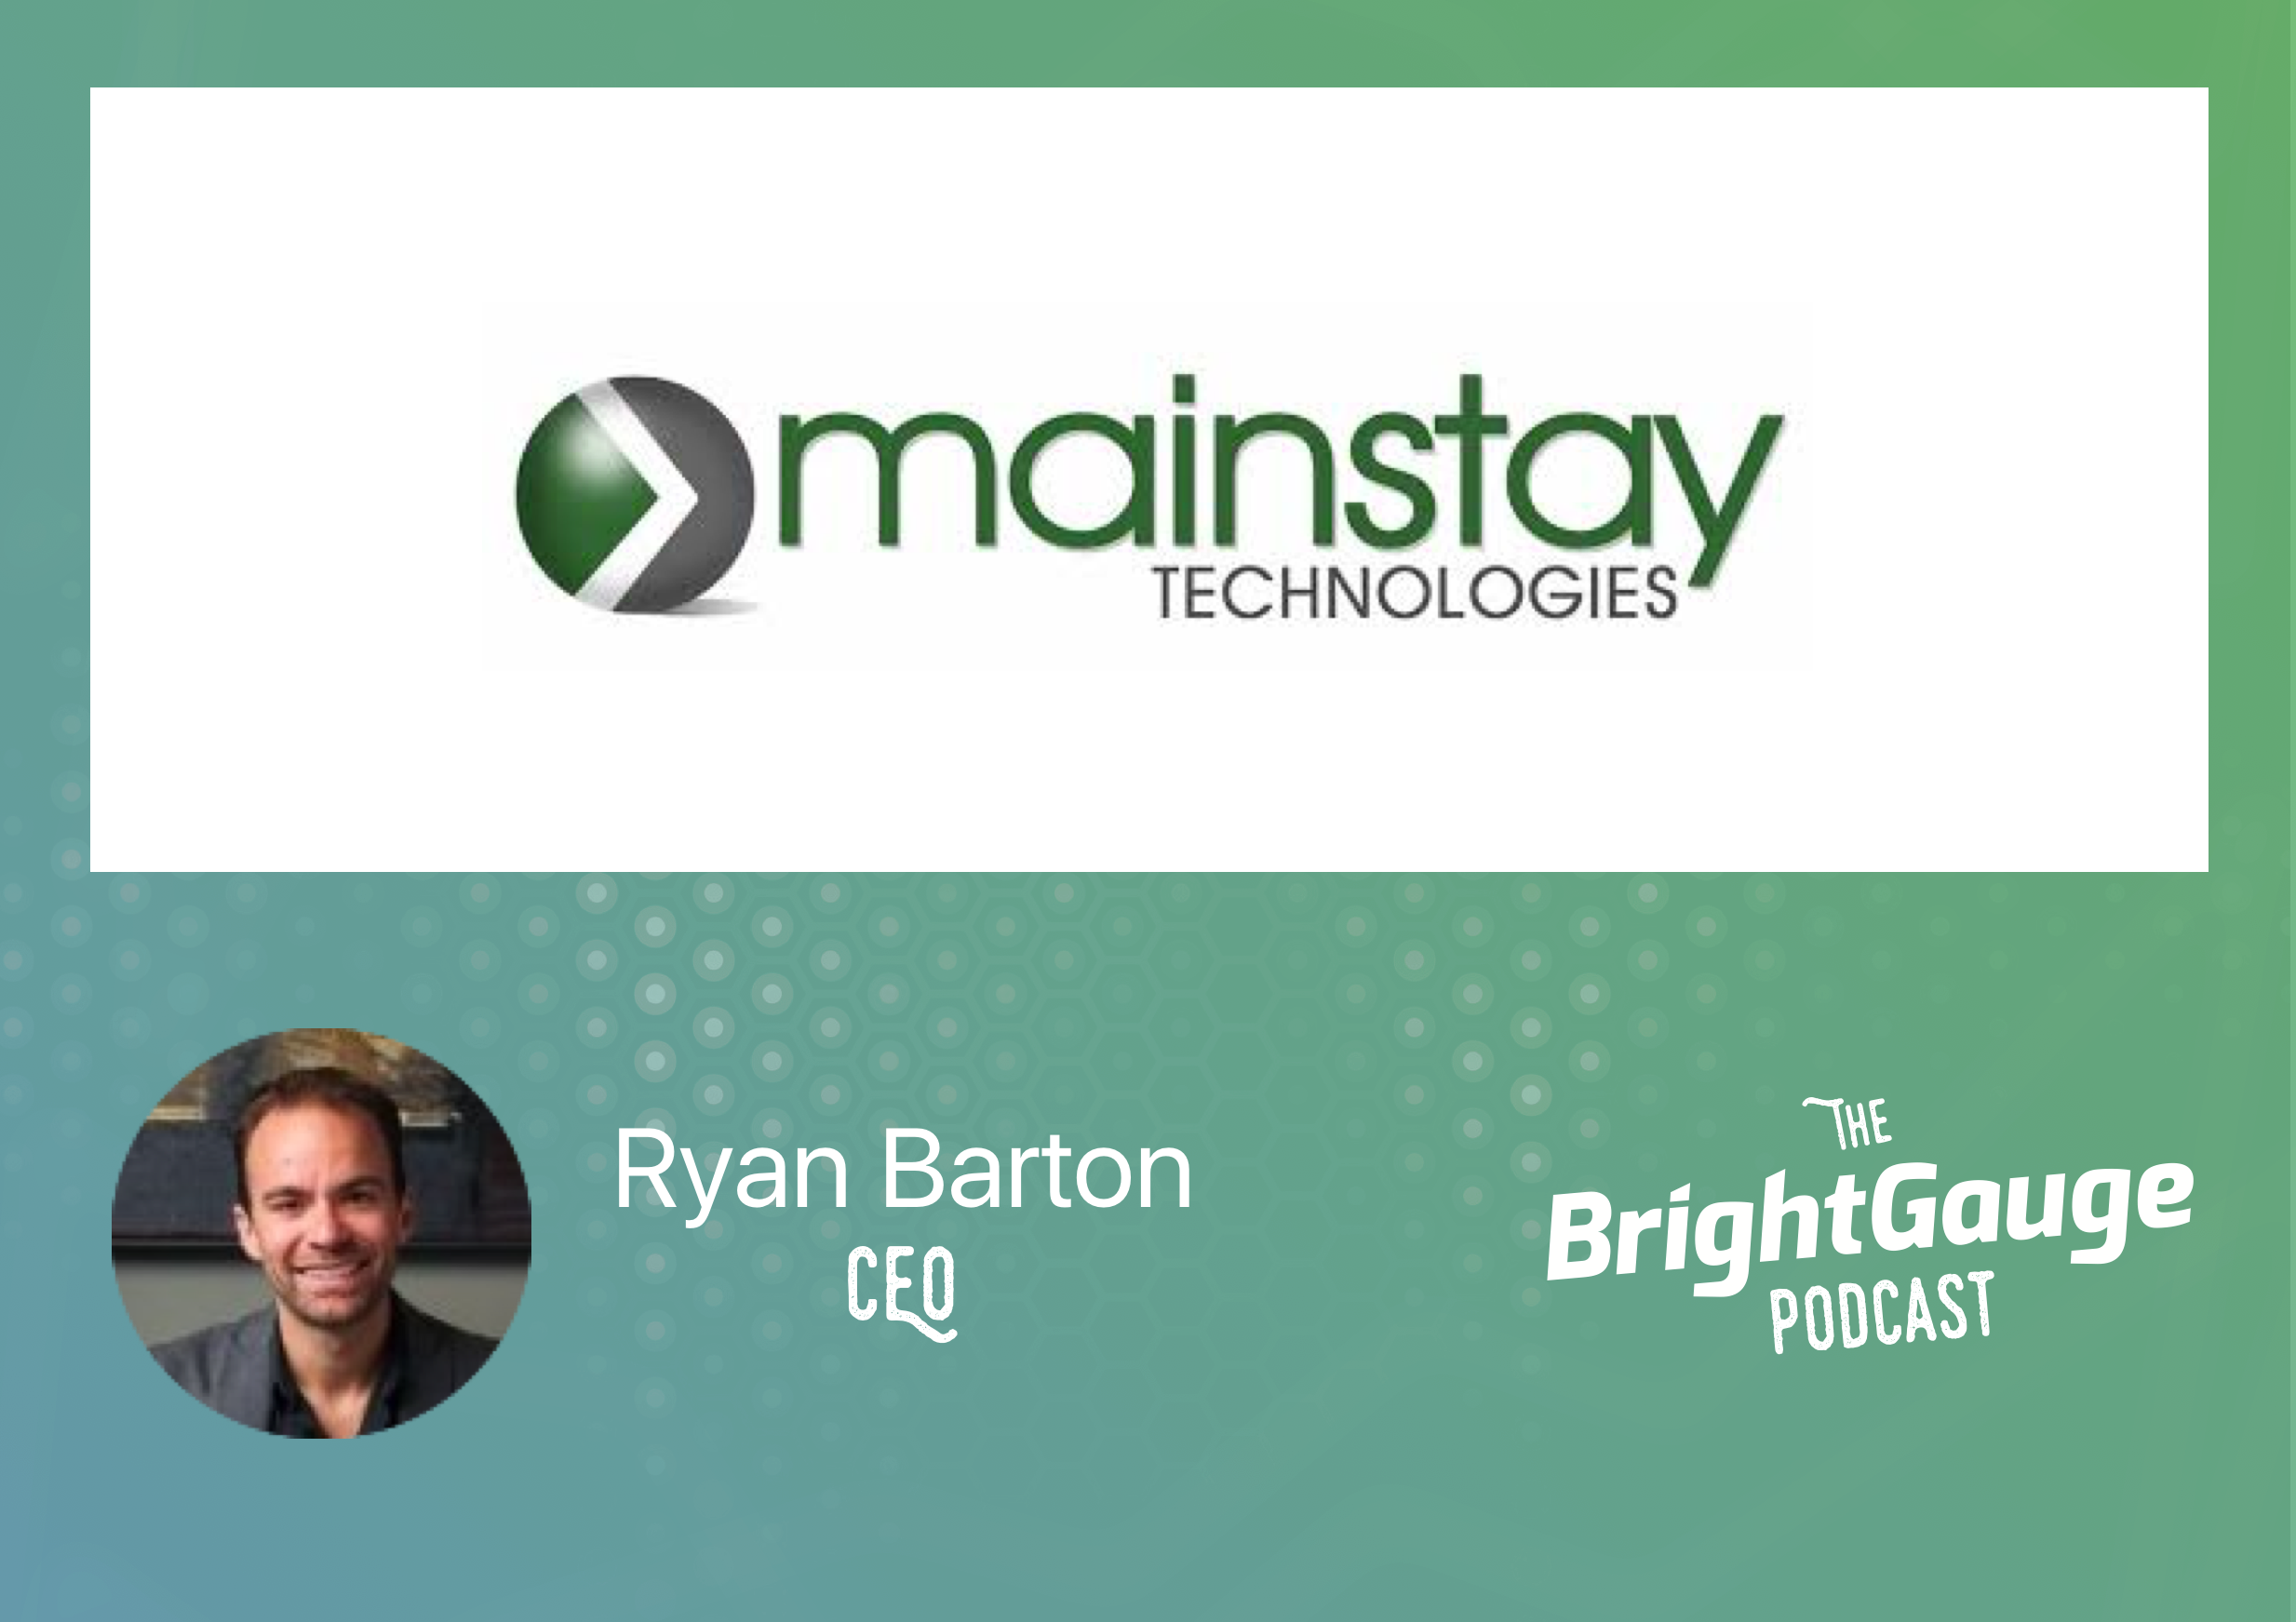 [Podcast] Episode 17 with Ryan Barton of Mainstay Technologies